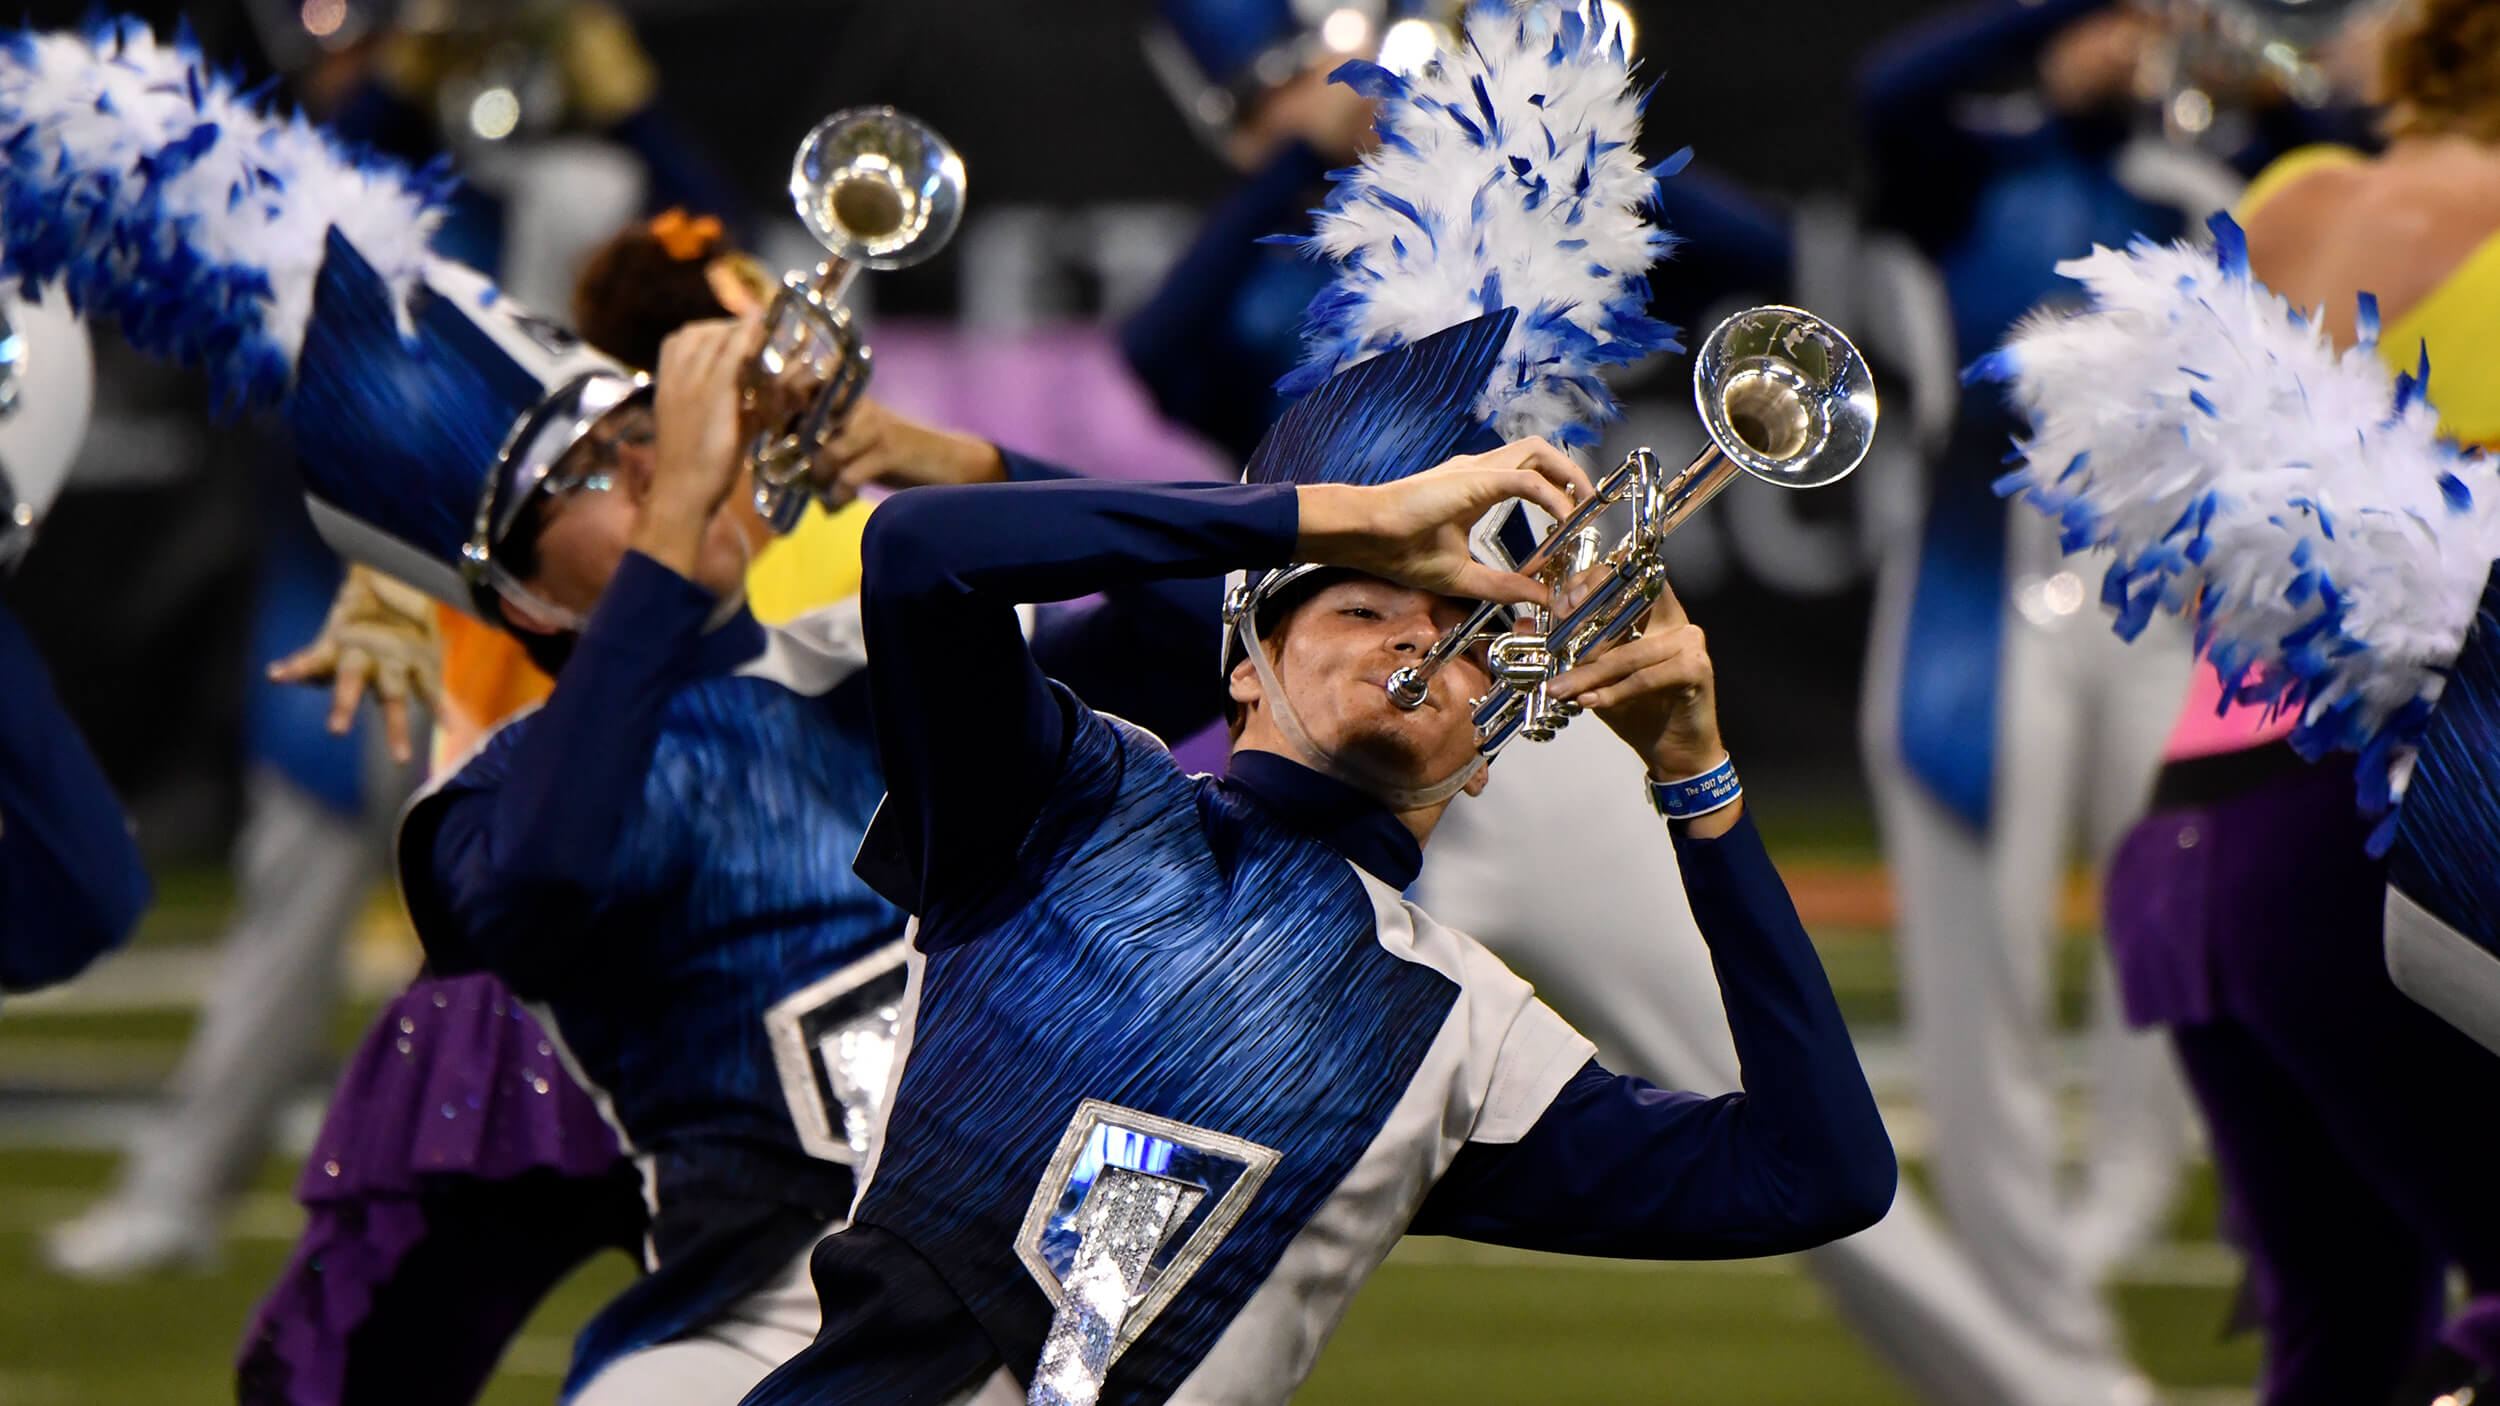 Grand Nats Day 1 3 Must Watch Performances